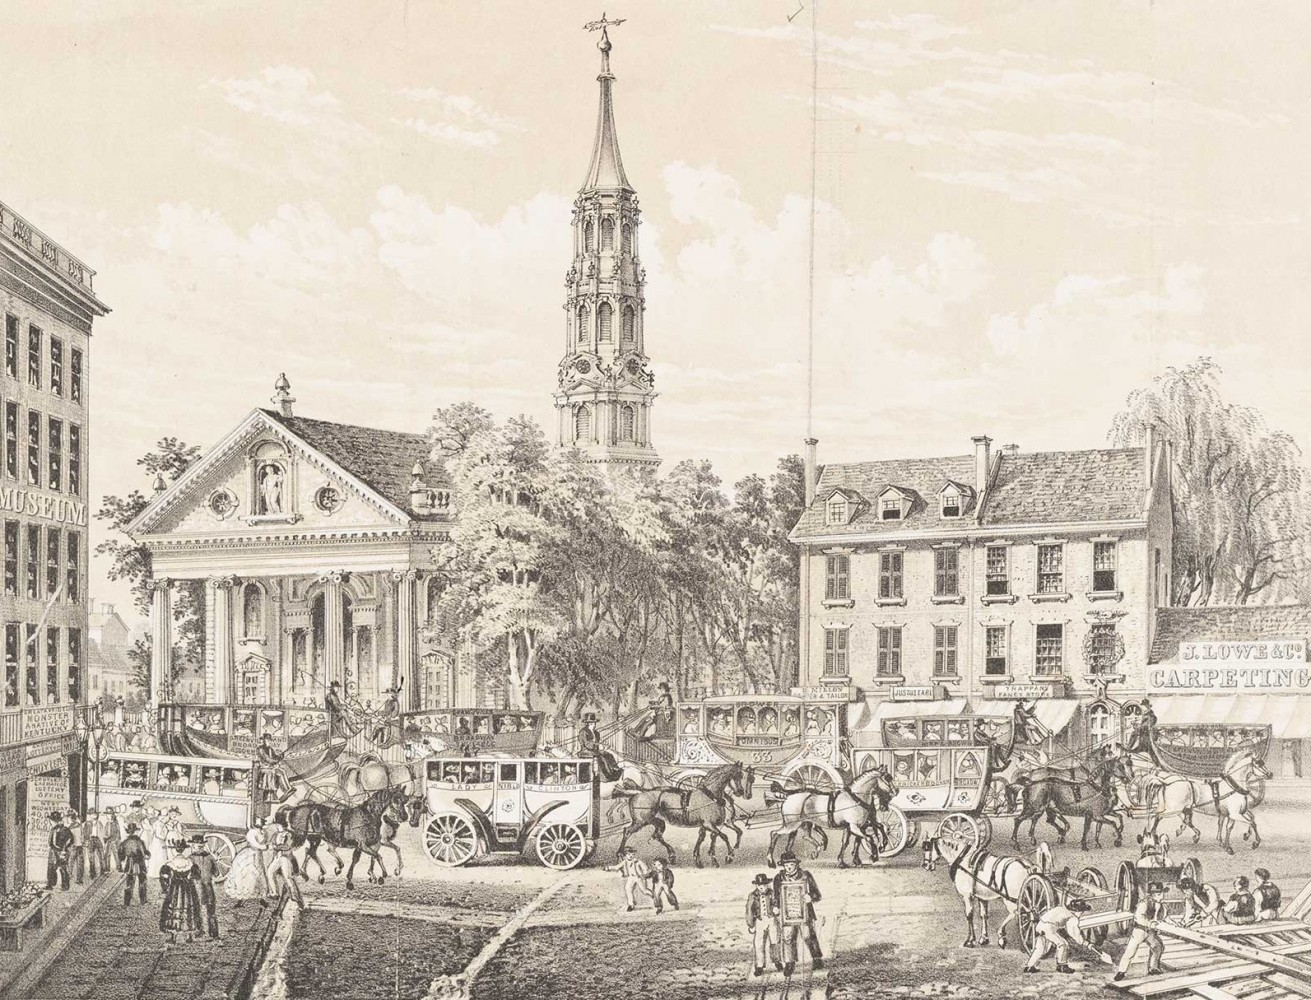 Image of Broadway and Ann, c. 1830